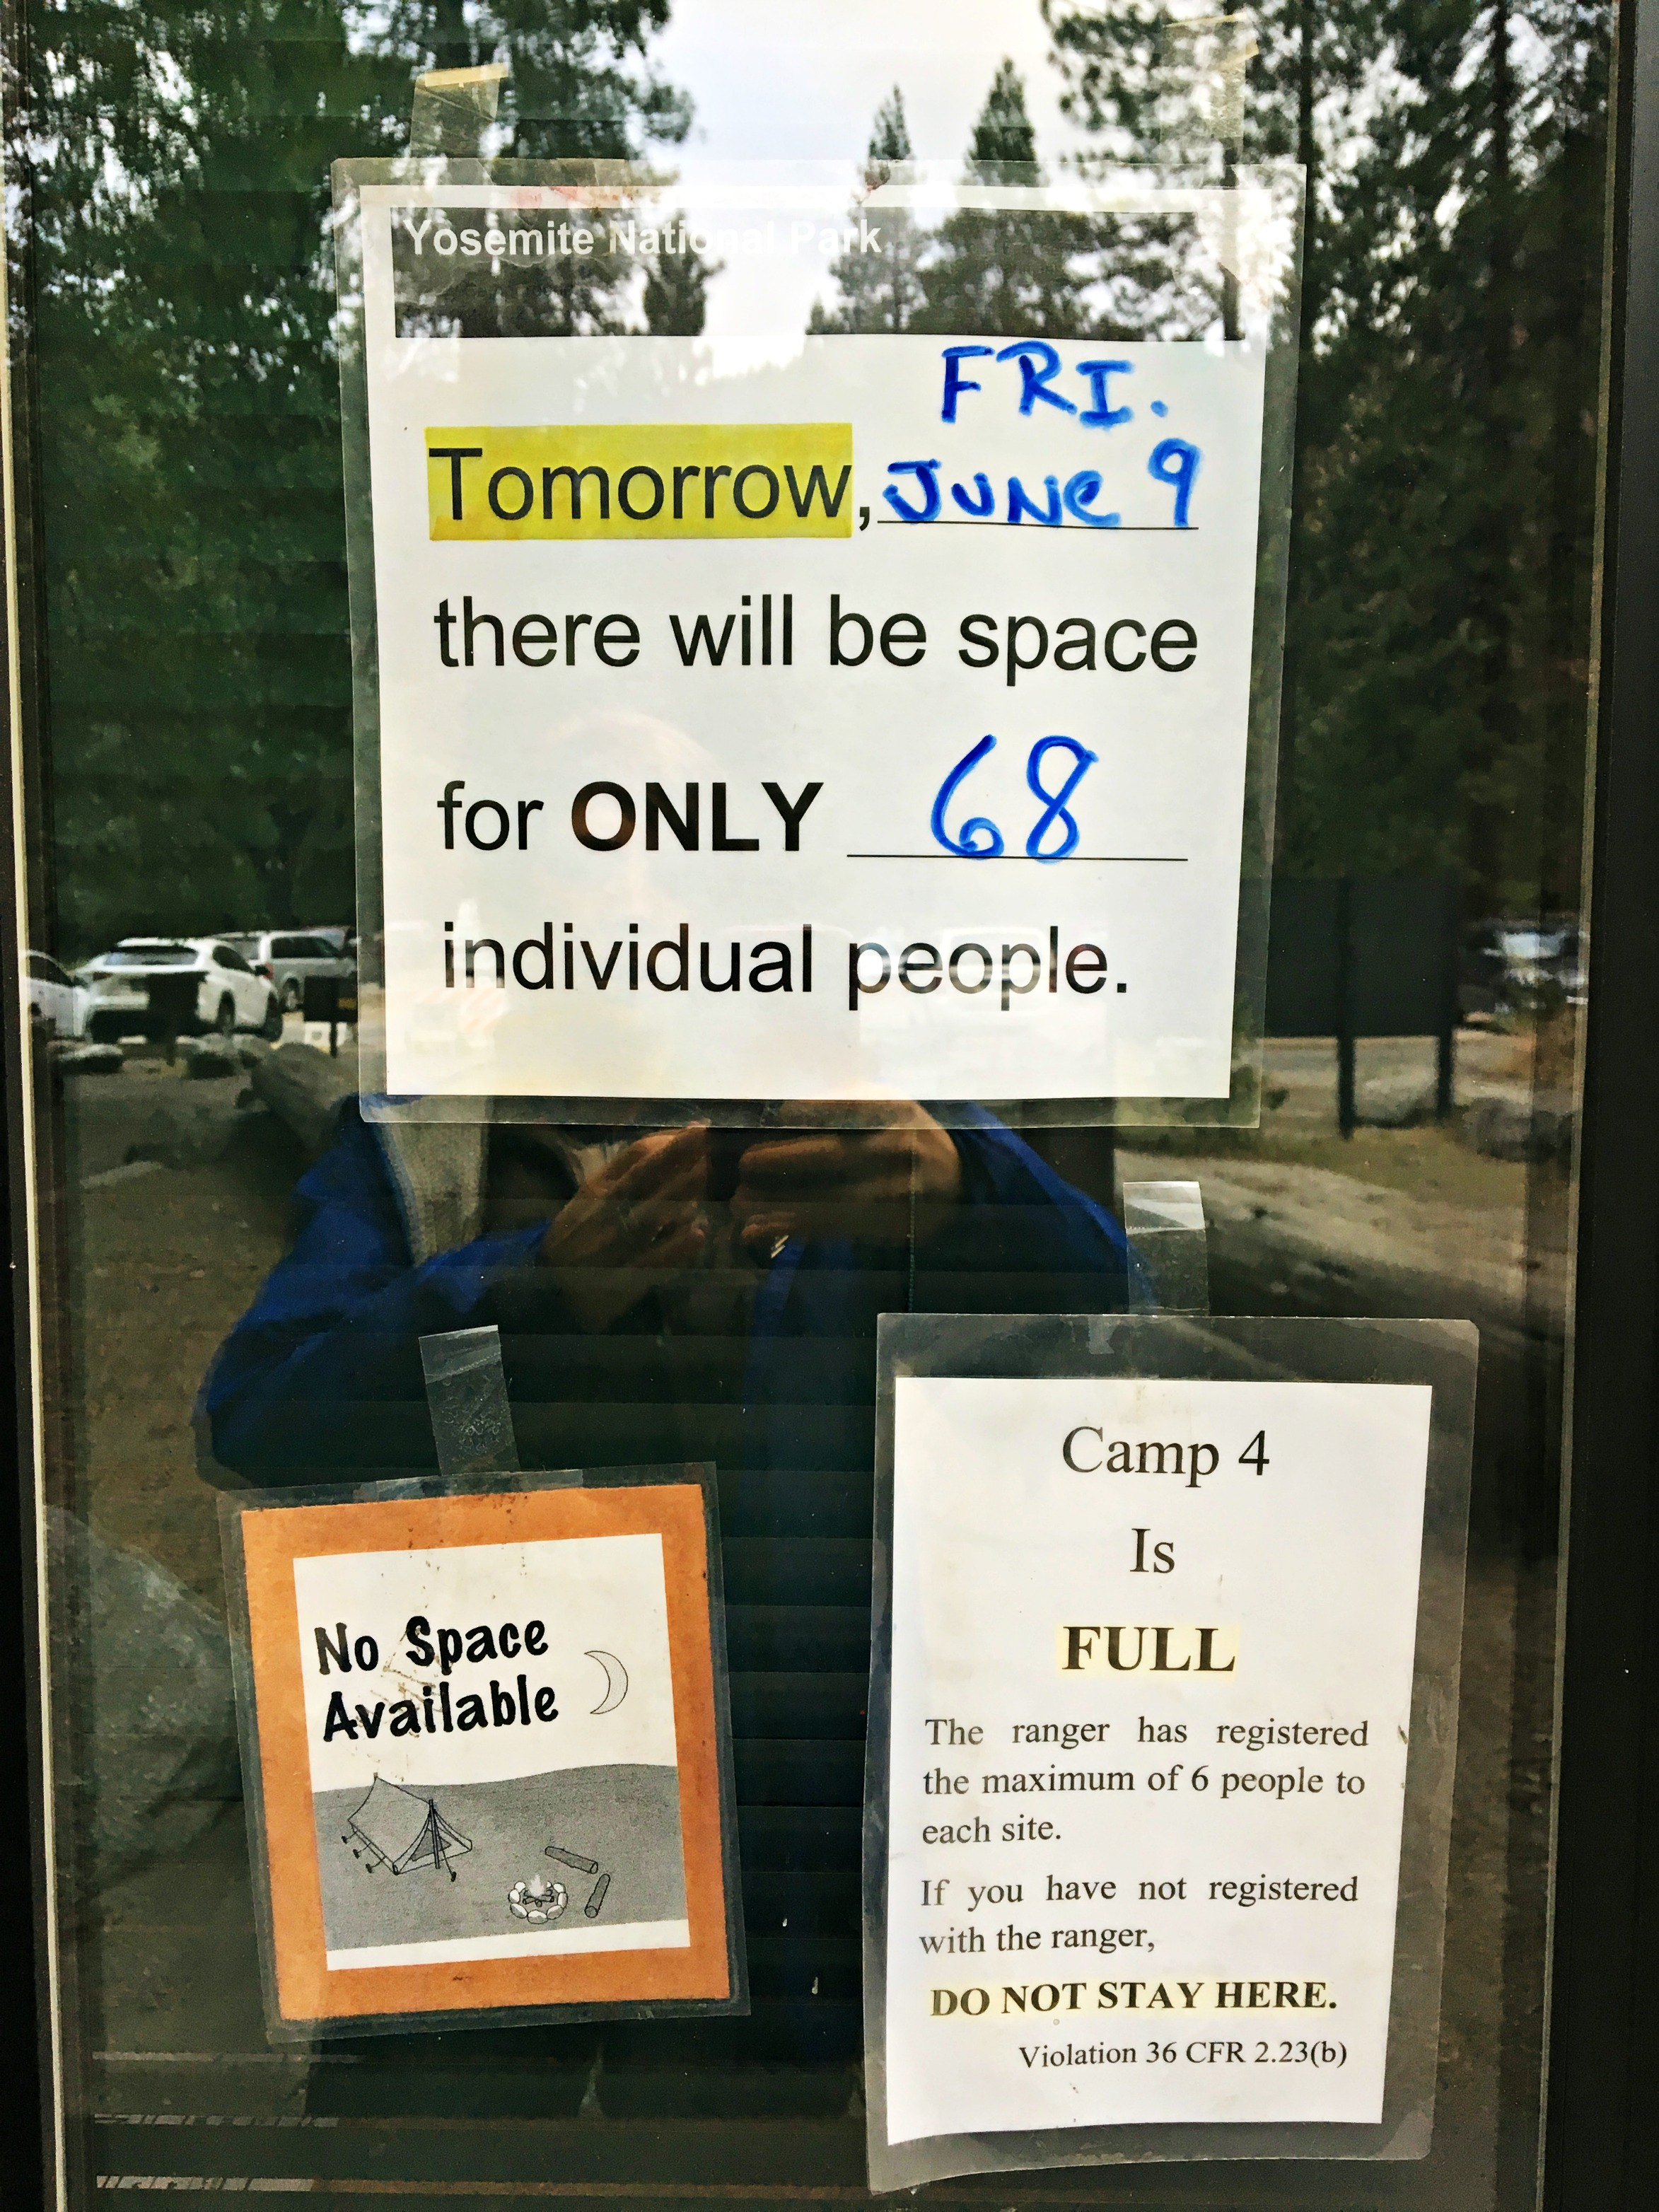 yosemite-camp-space-available-sign